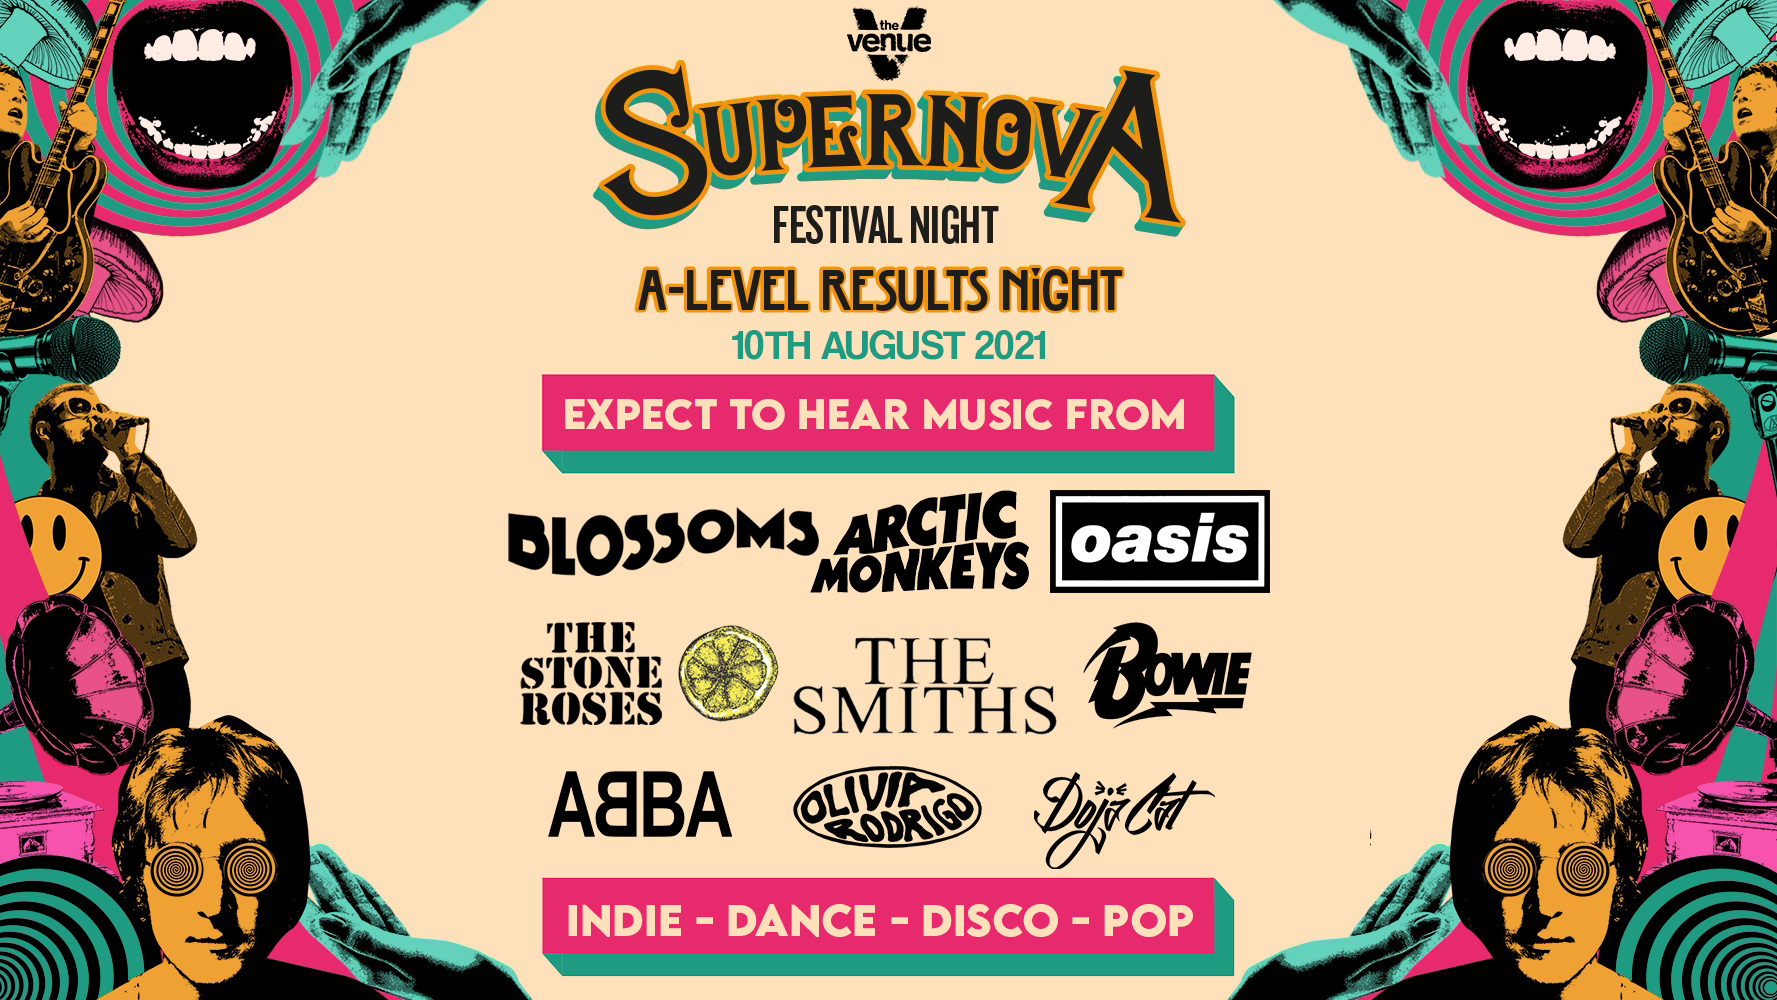 Supernova at Venue Manchester 10th August 2021